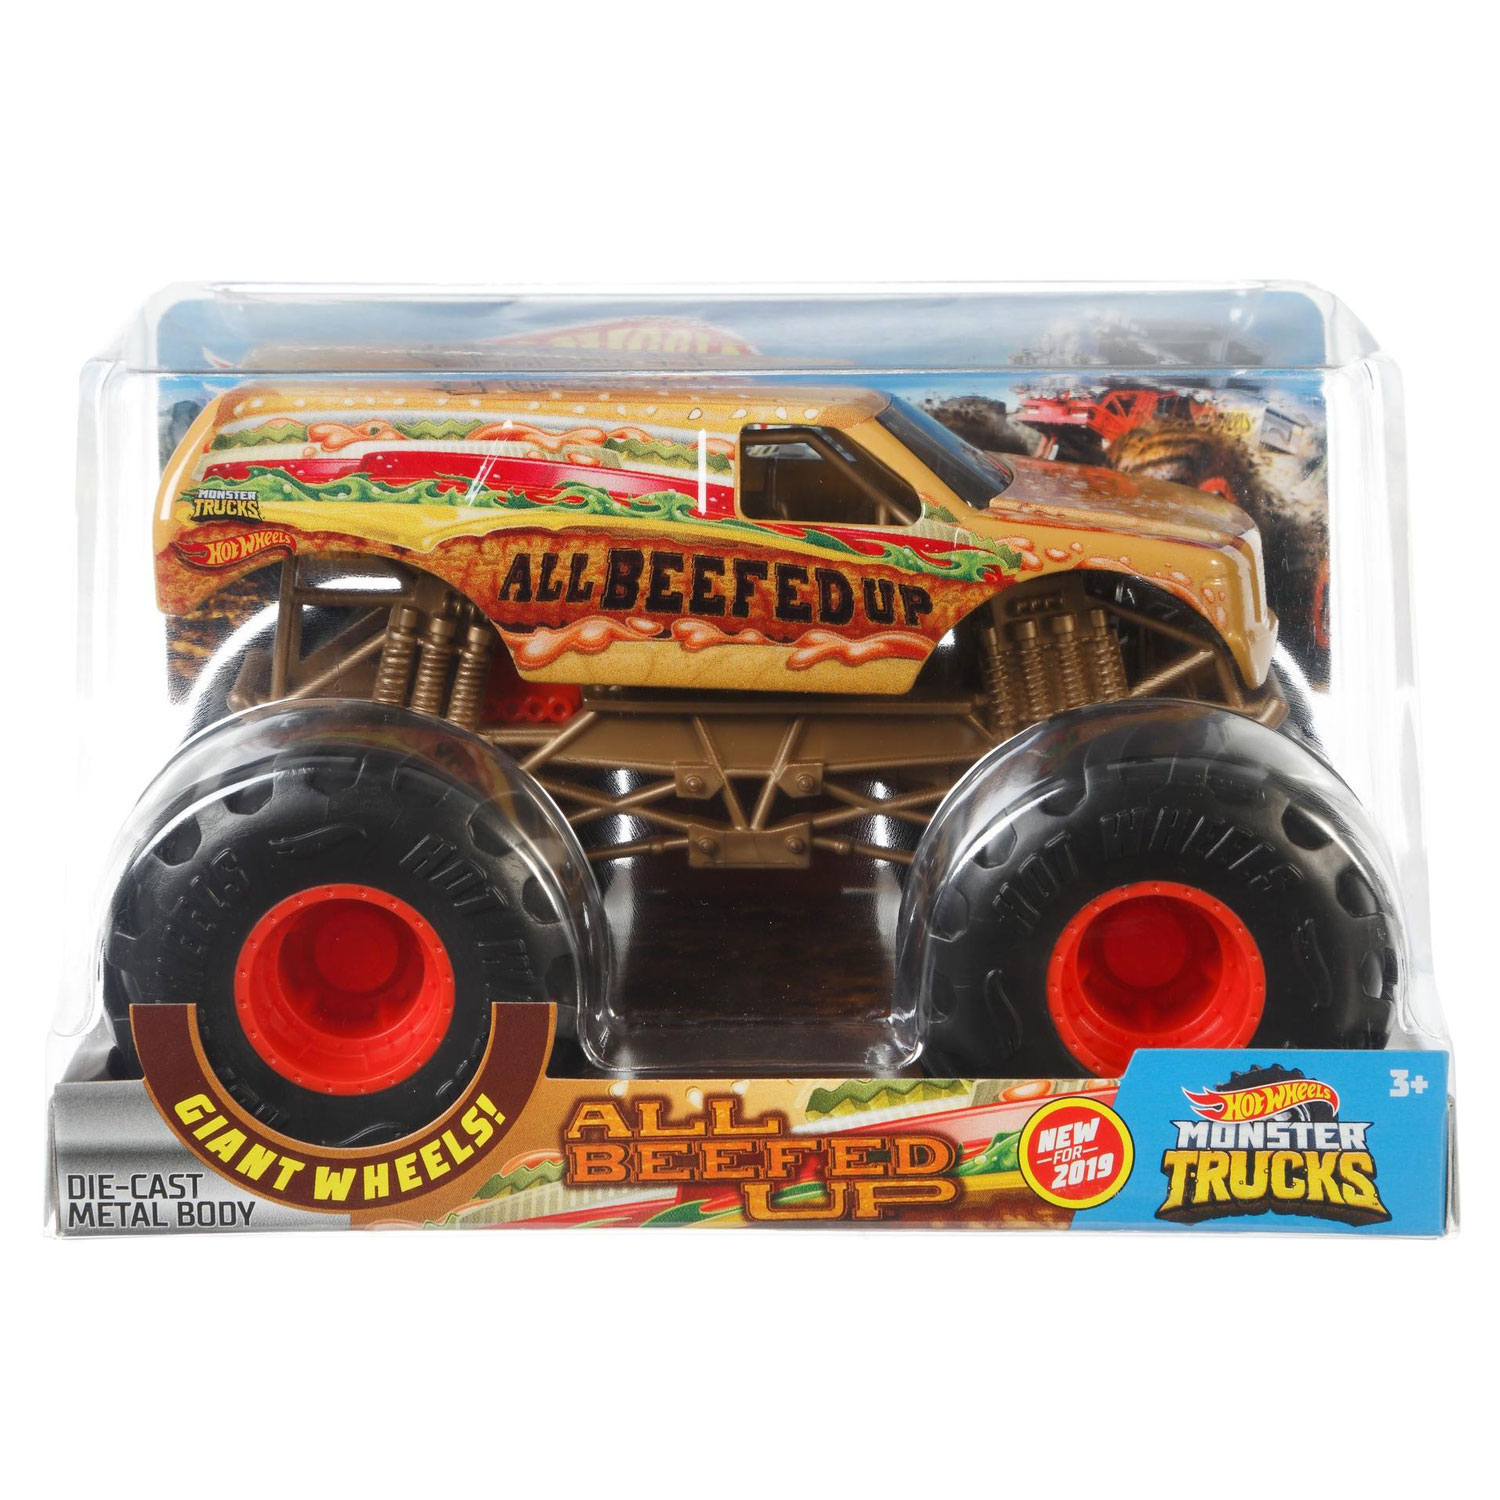 Hot Wheels Monster Trucks 1:24 Collection - All Beefed Up